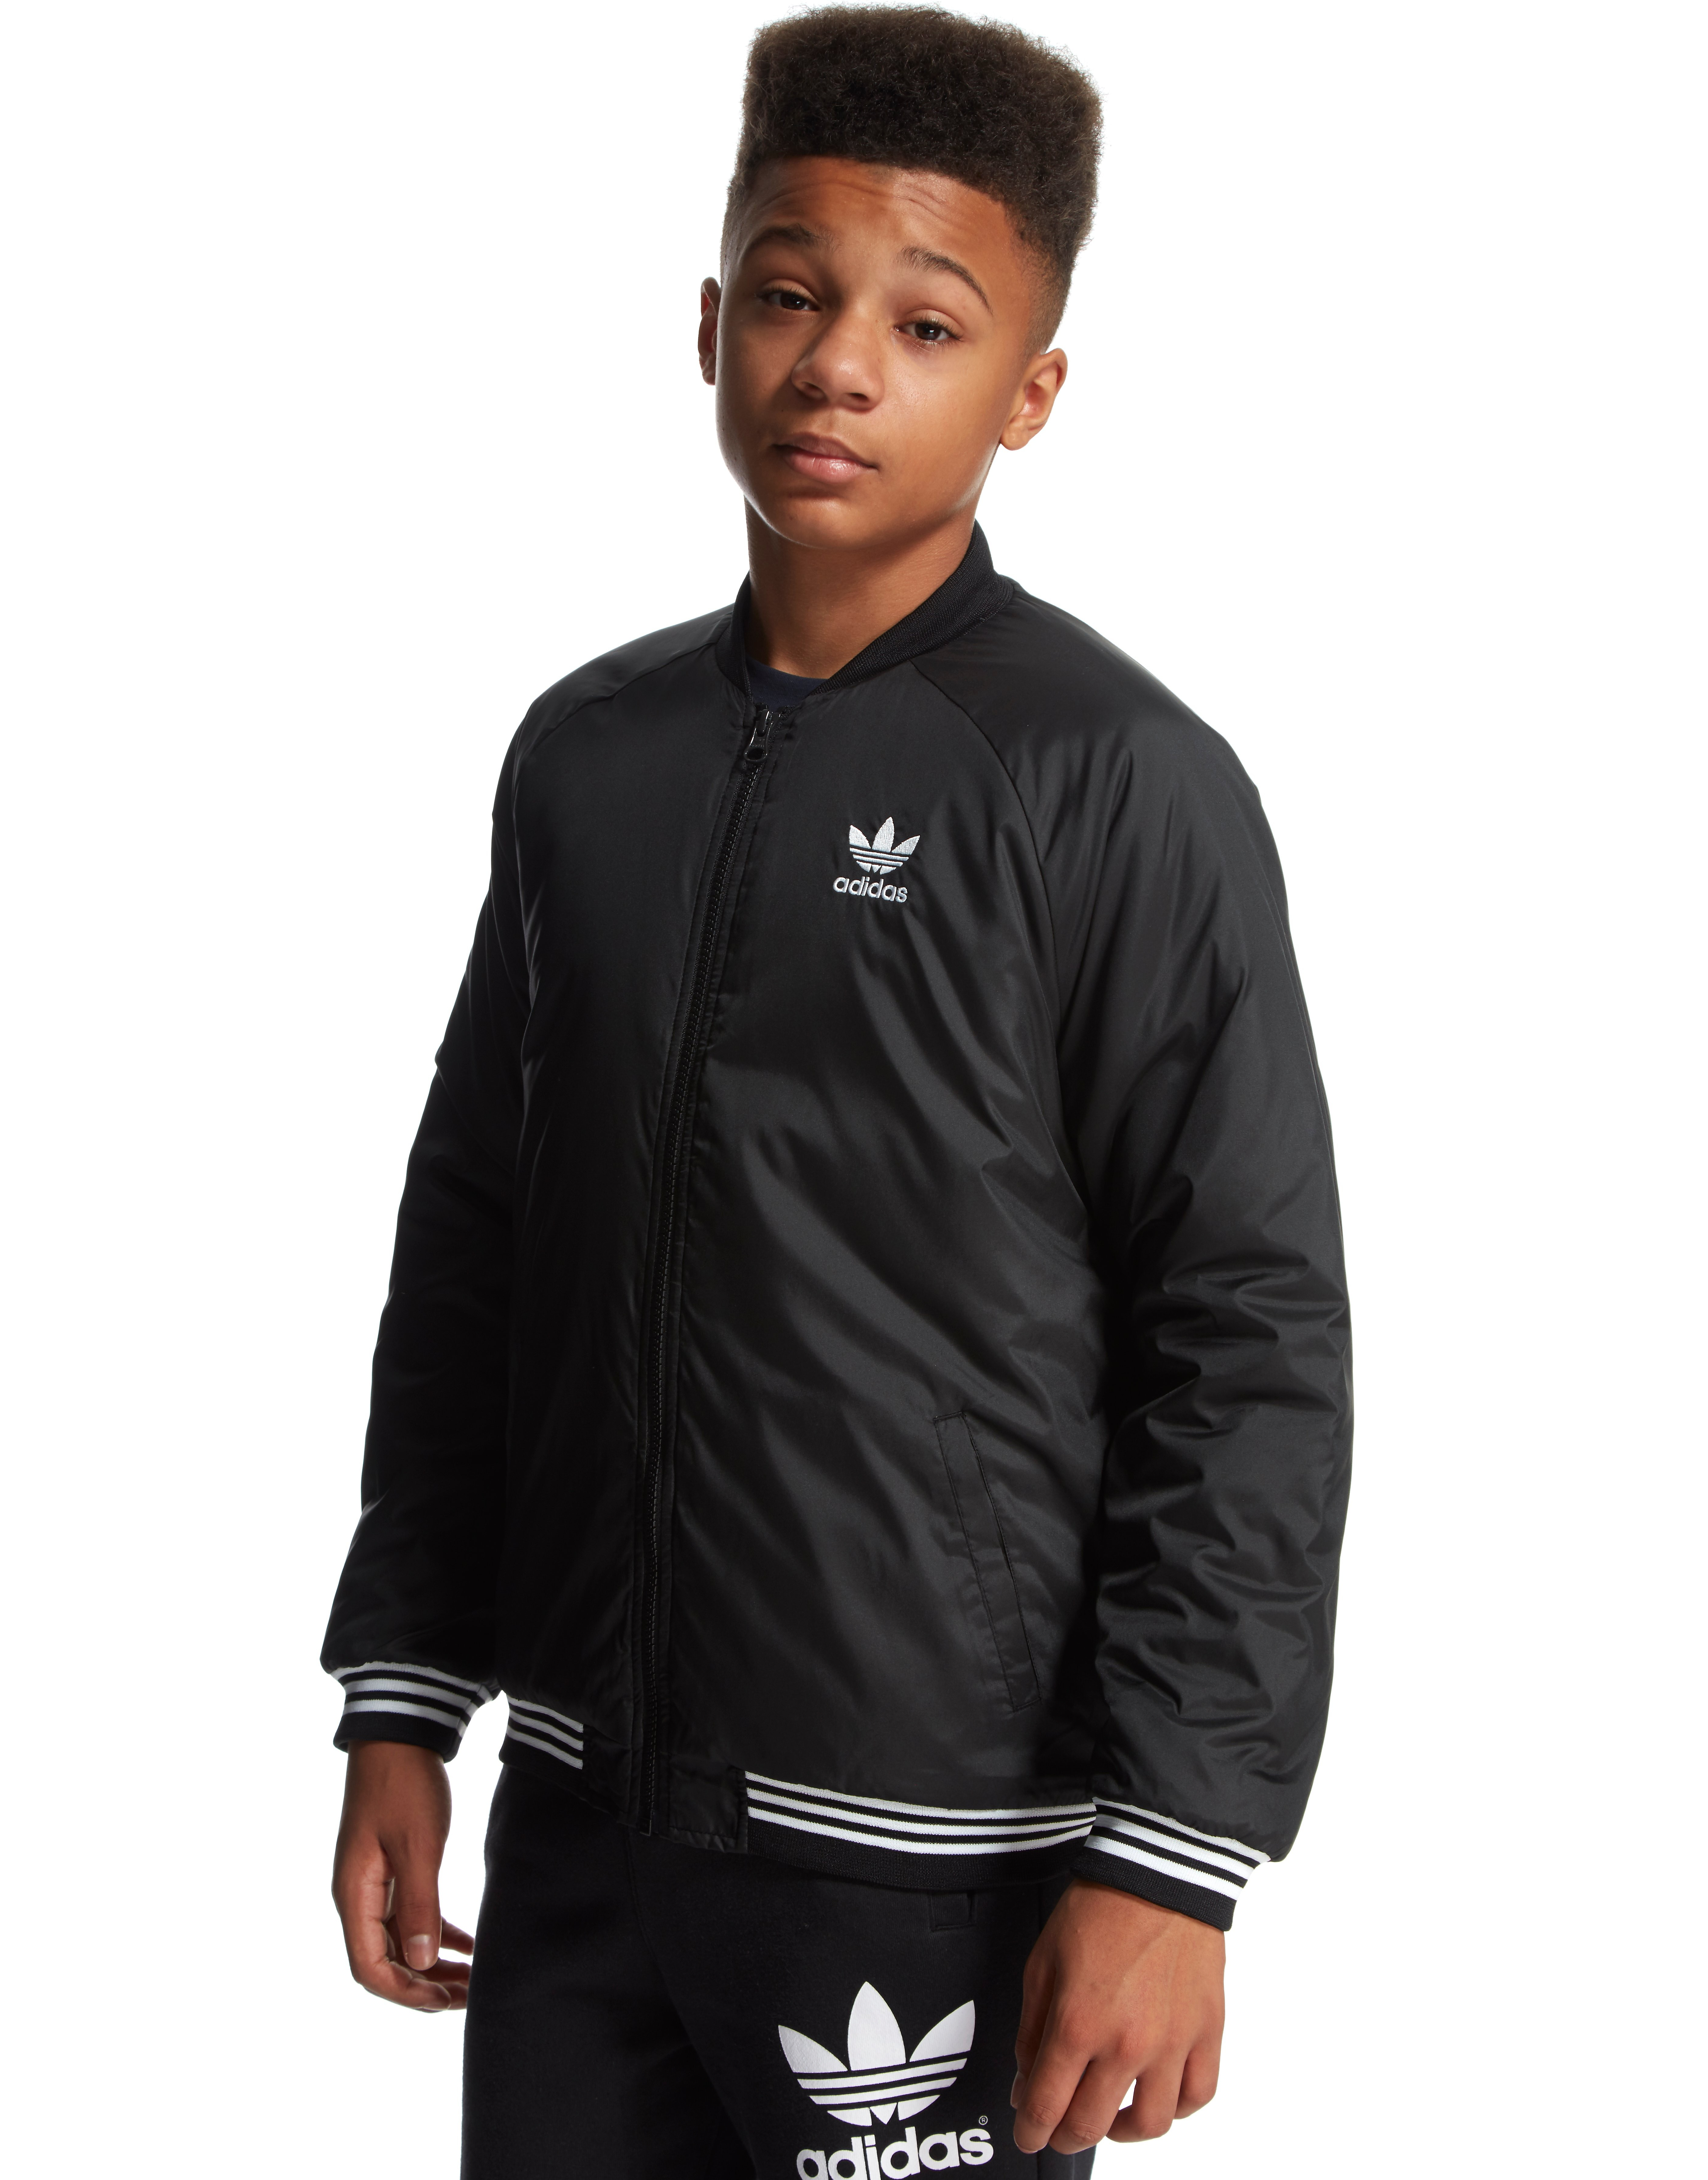 adidas Originals Superstar Jacket Junior